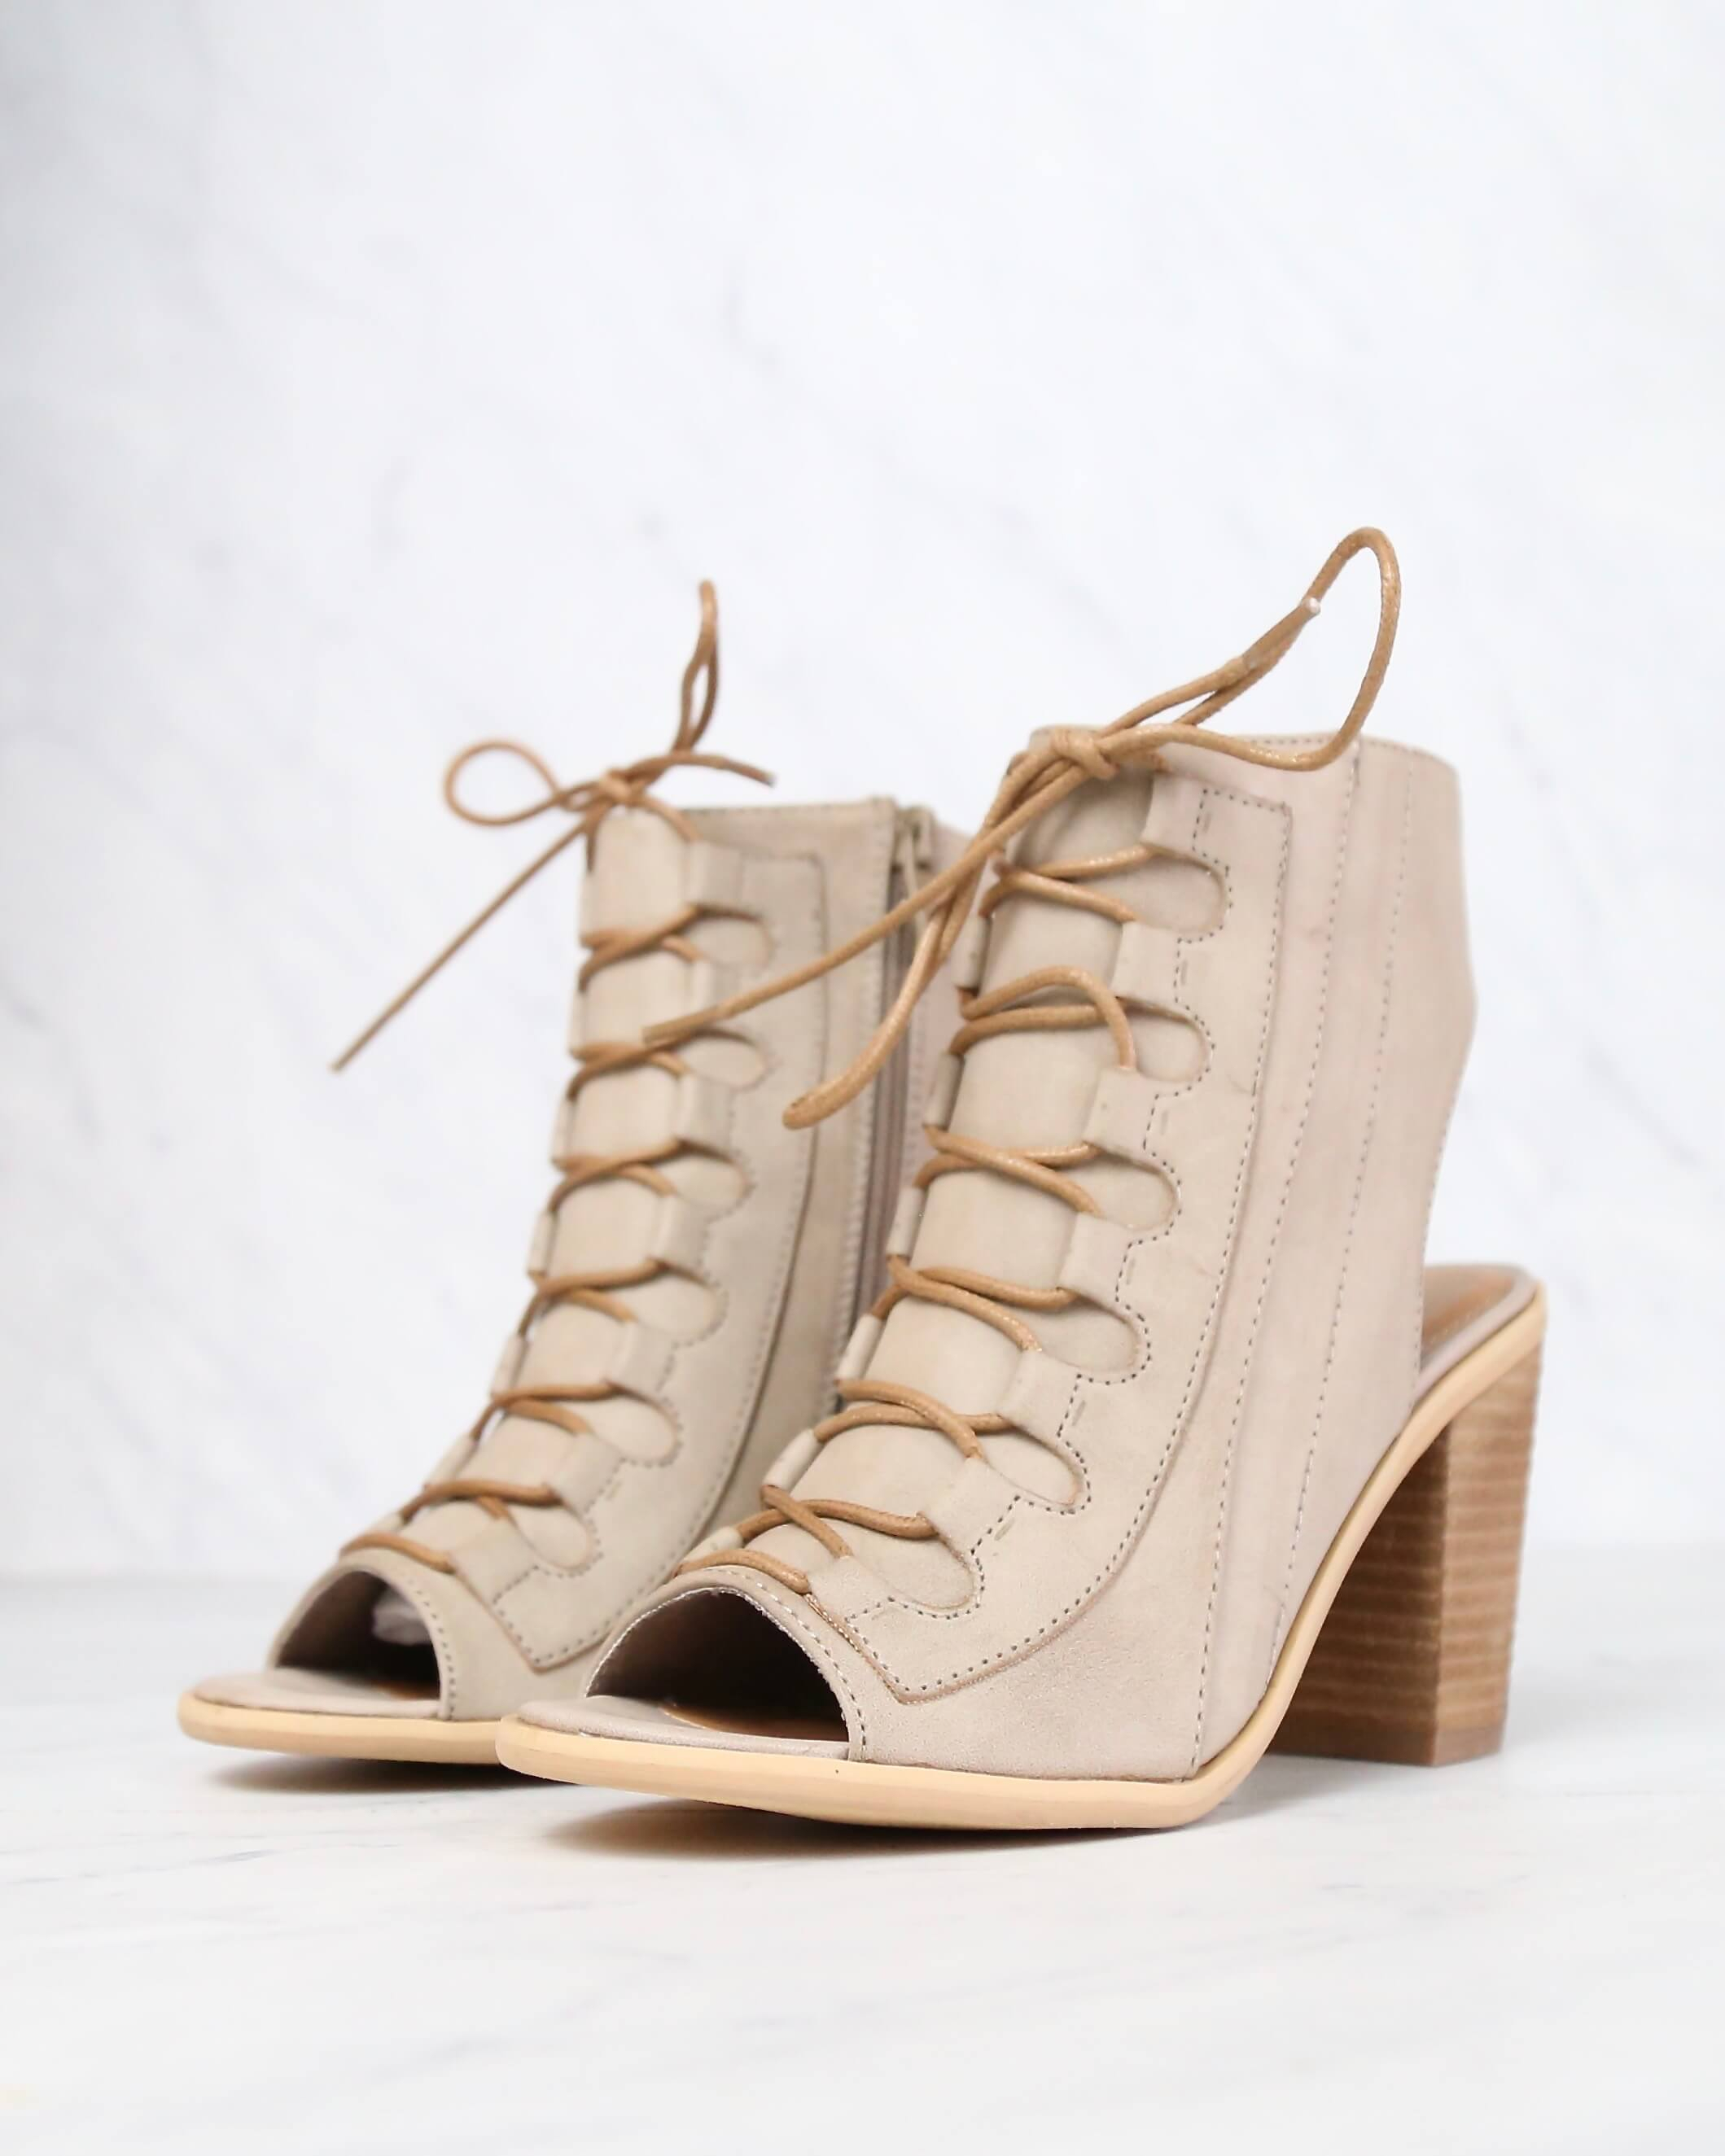 Image of Very Volatile - Dapper Taupe Heeled Sandals